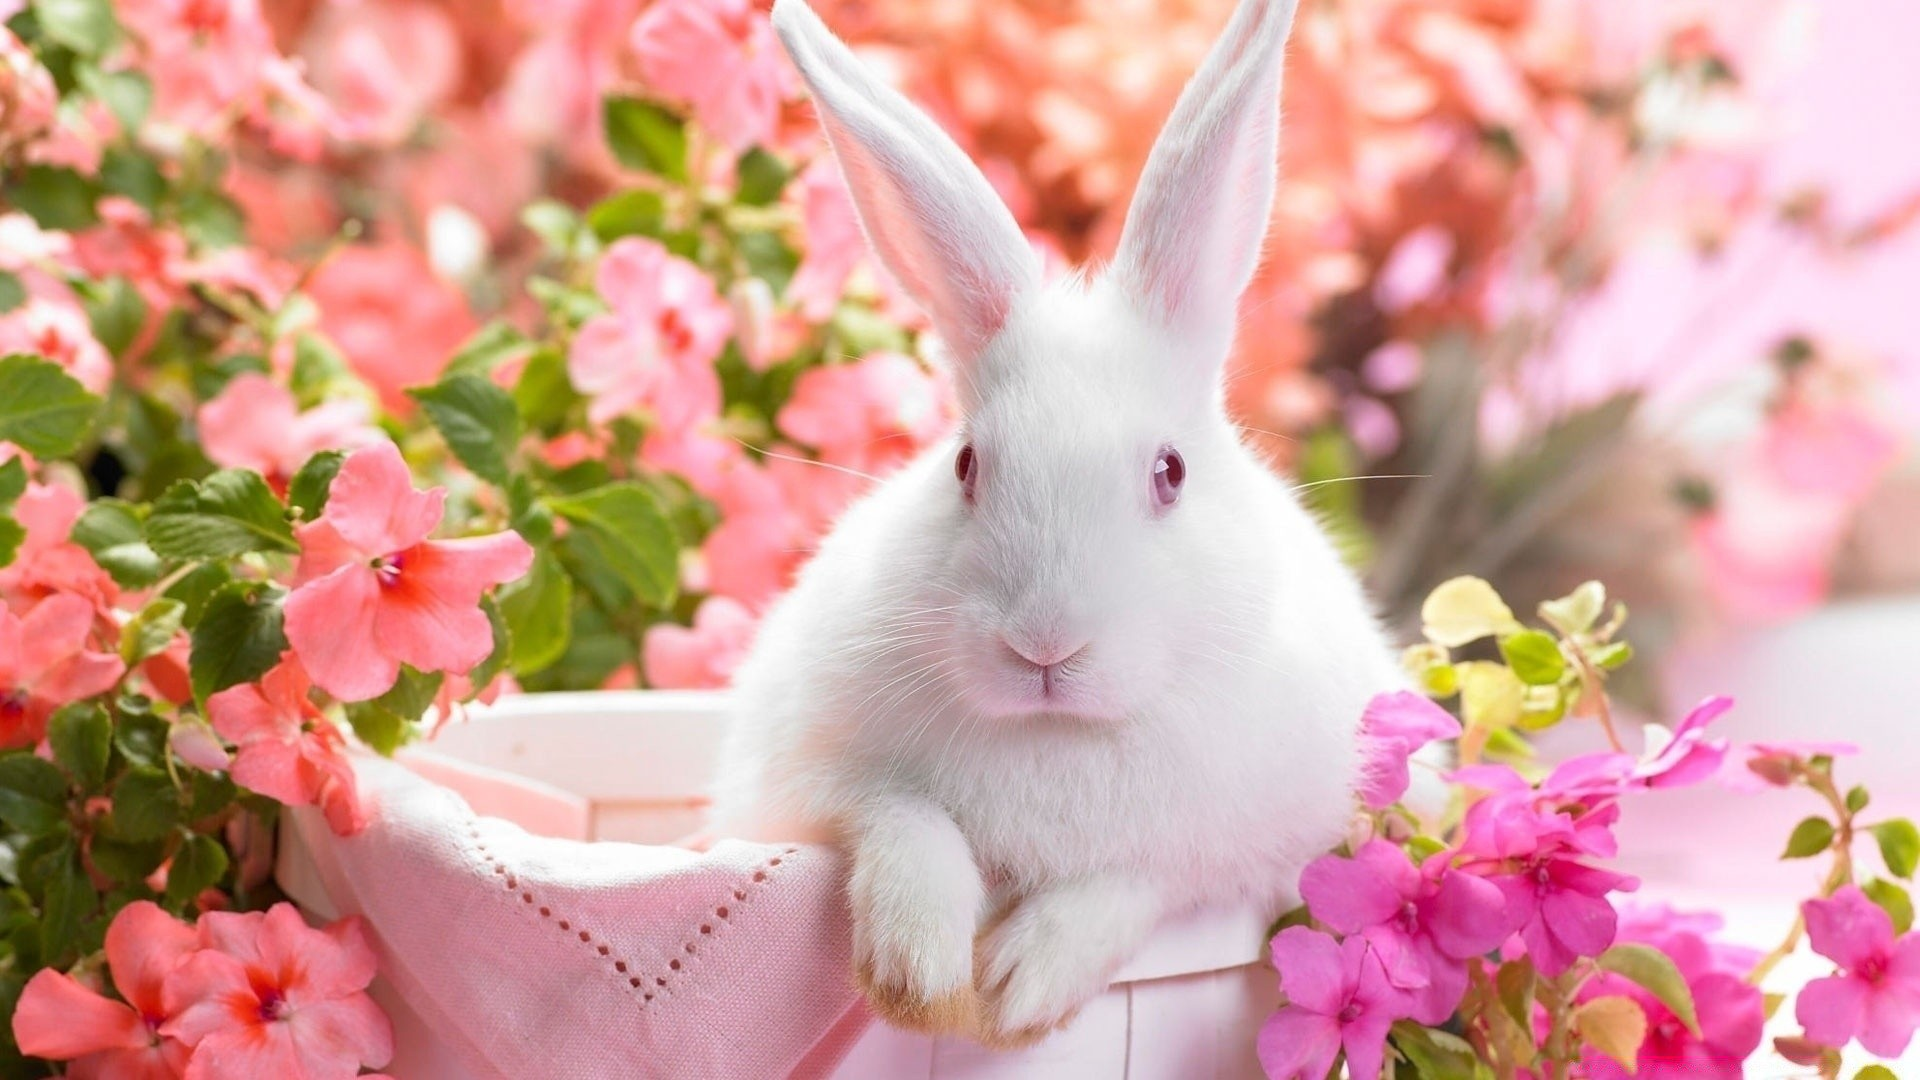 Cute Easter Bunny Desktop Wallpapers For Free